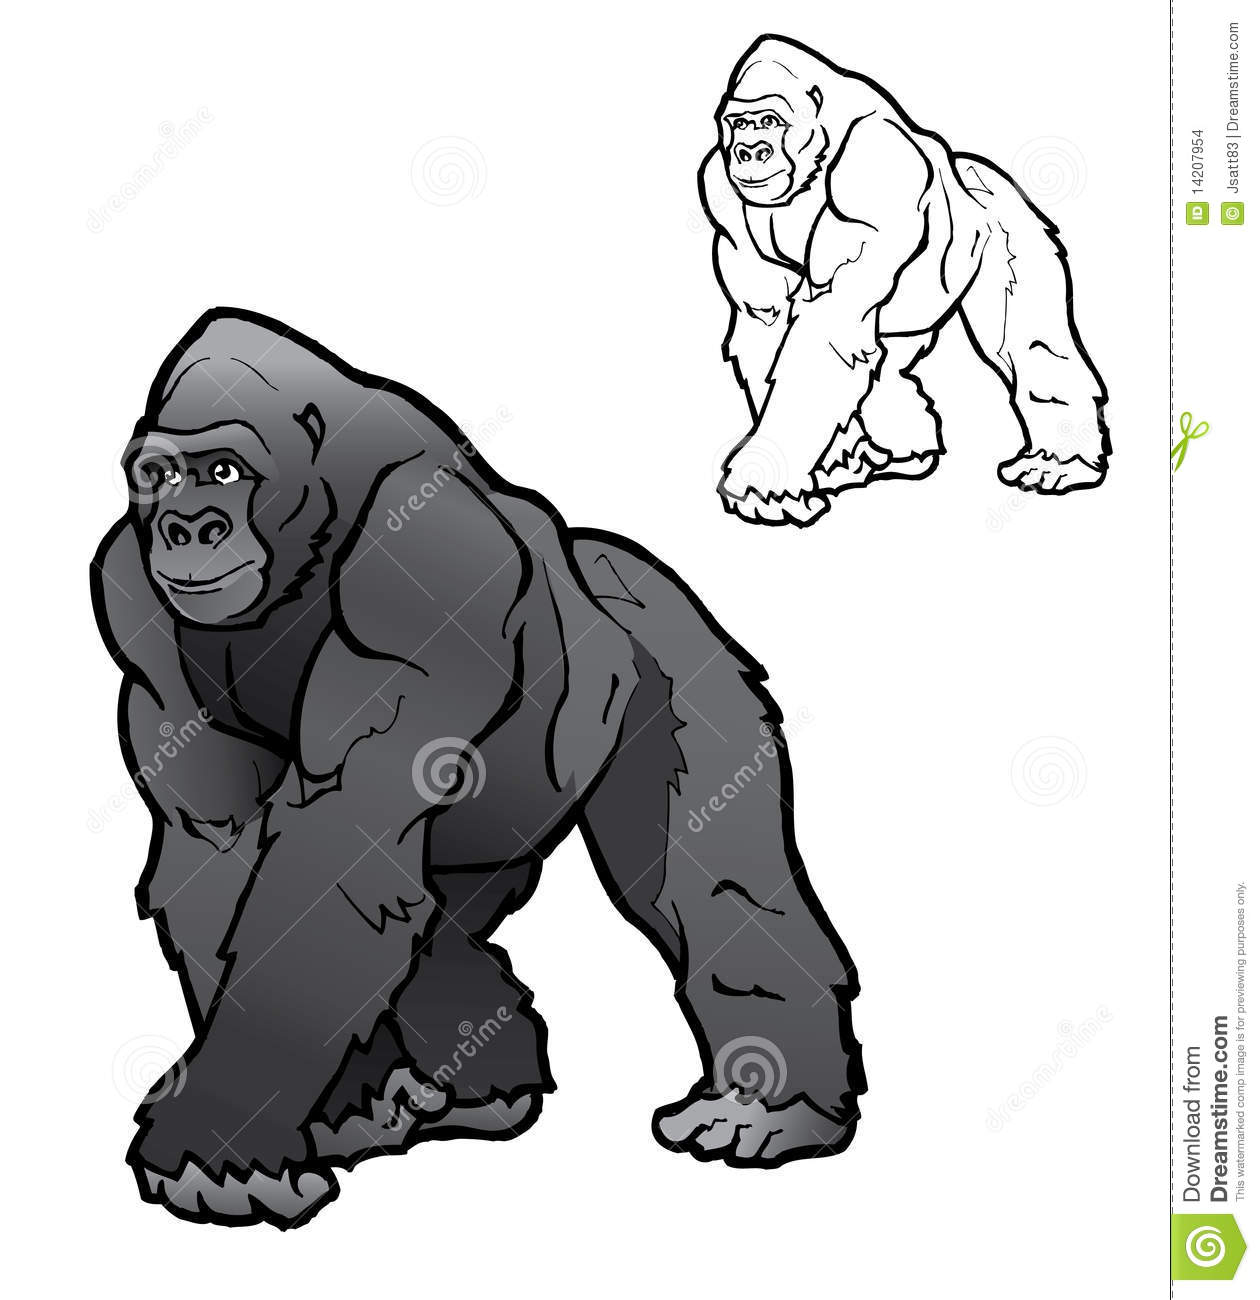 Silverback Gorilla Illustration Stock Images - Image: 14207954